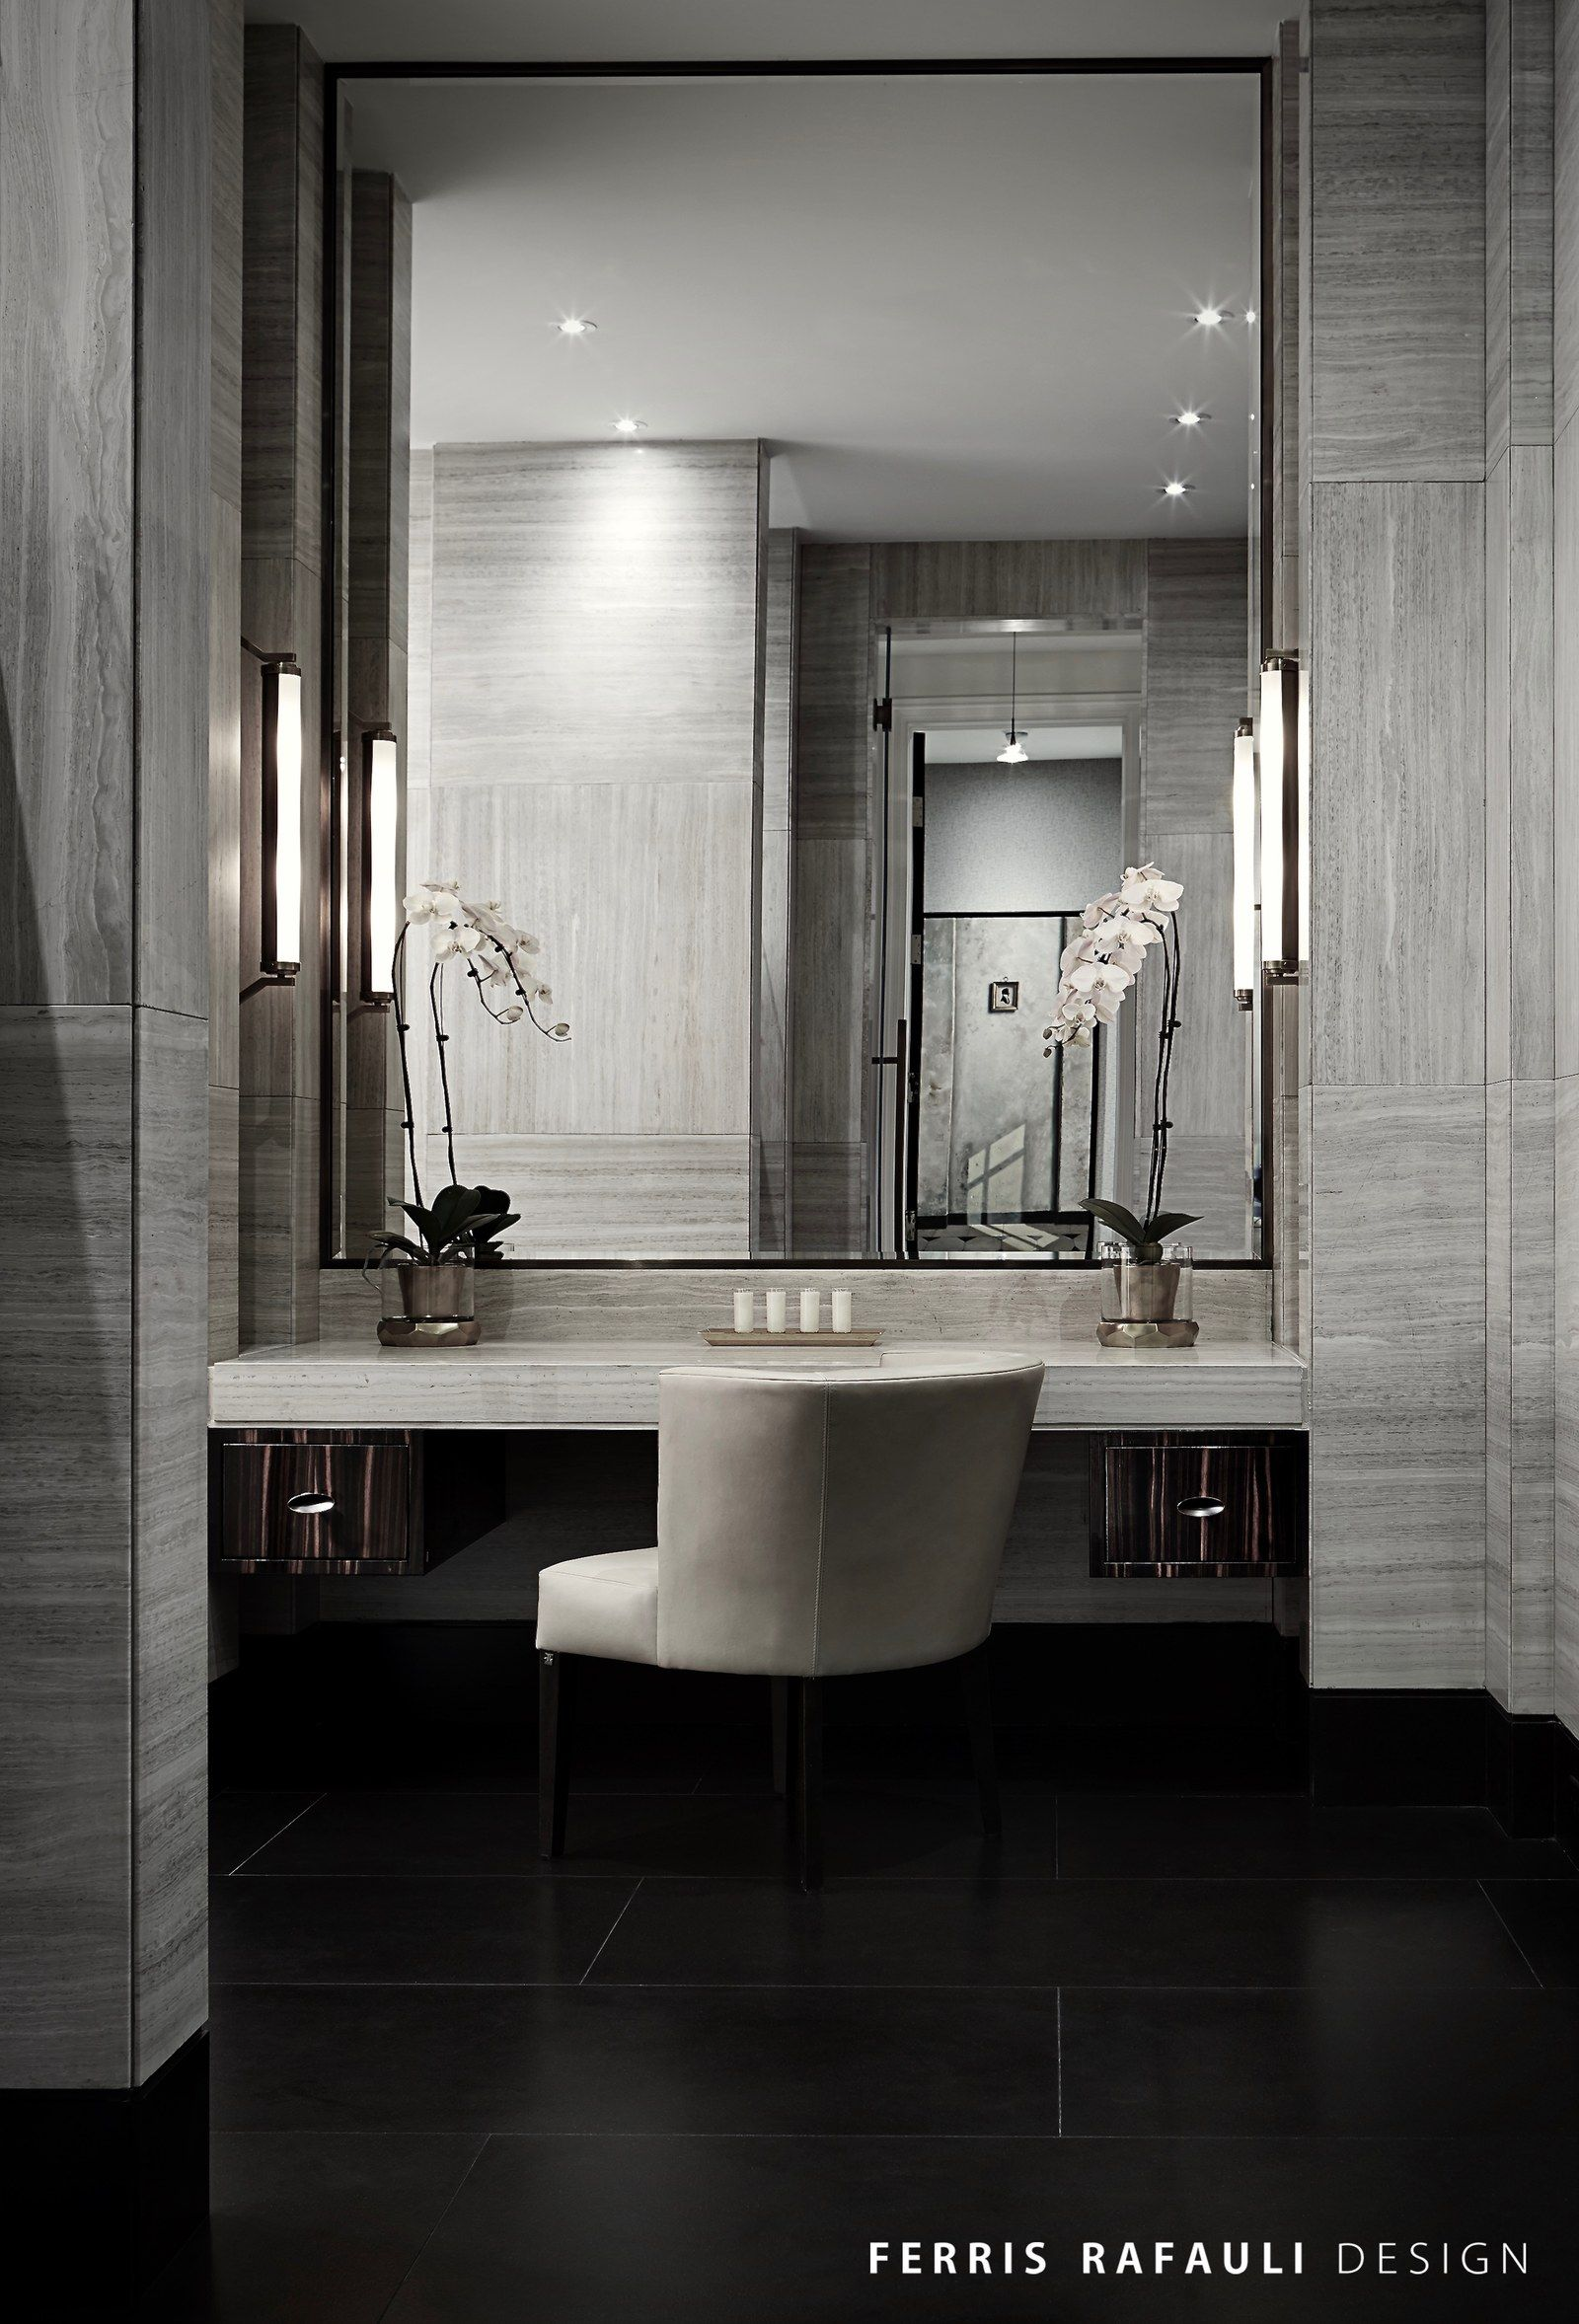 Ferris rafauli architecture by ferris rafauli get for Bathroom designs with dressing area